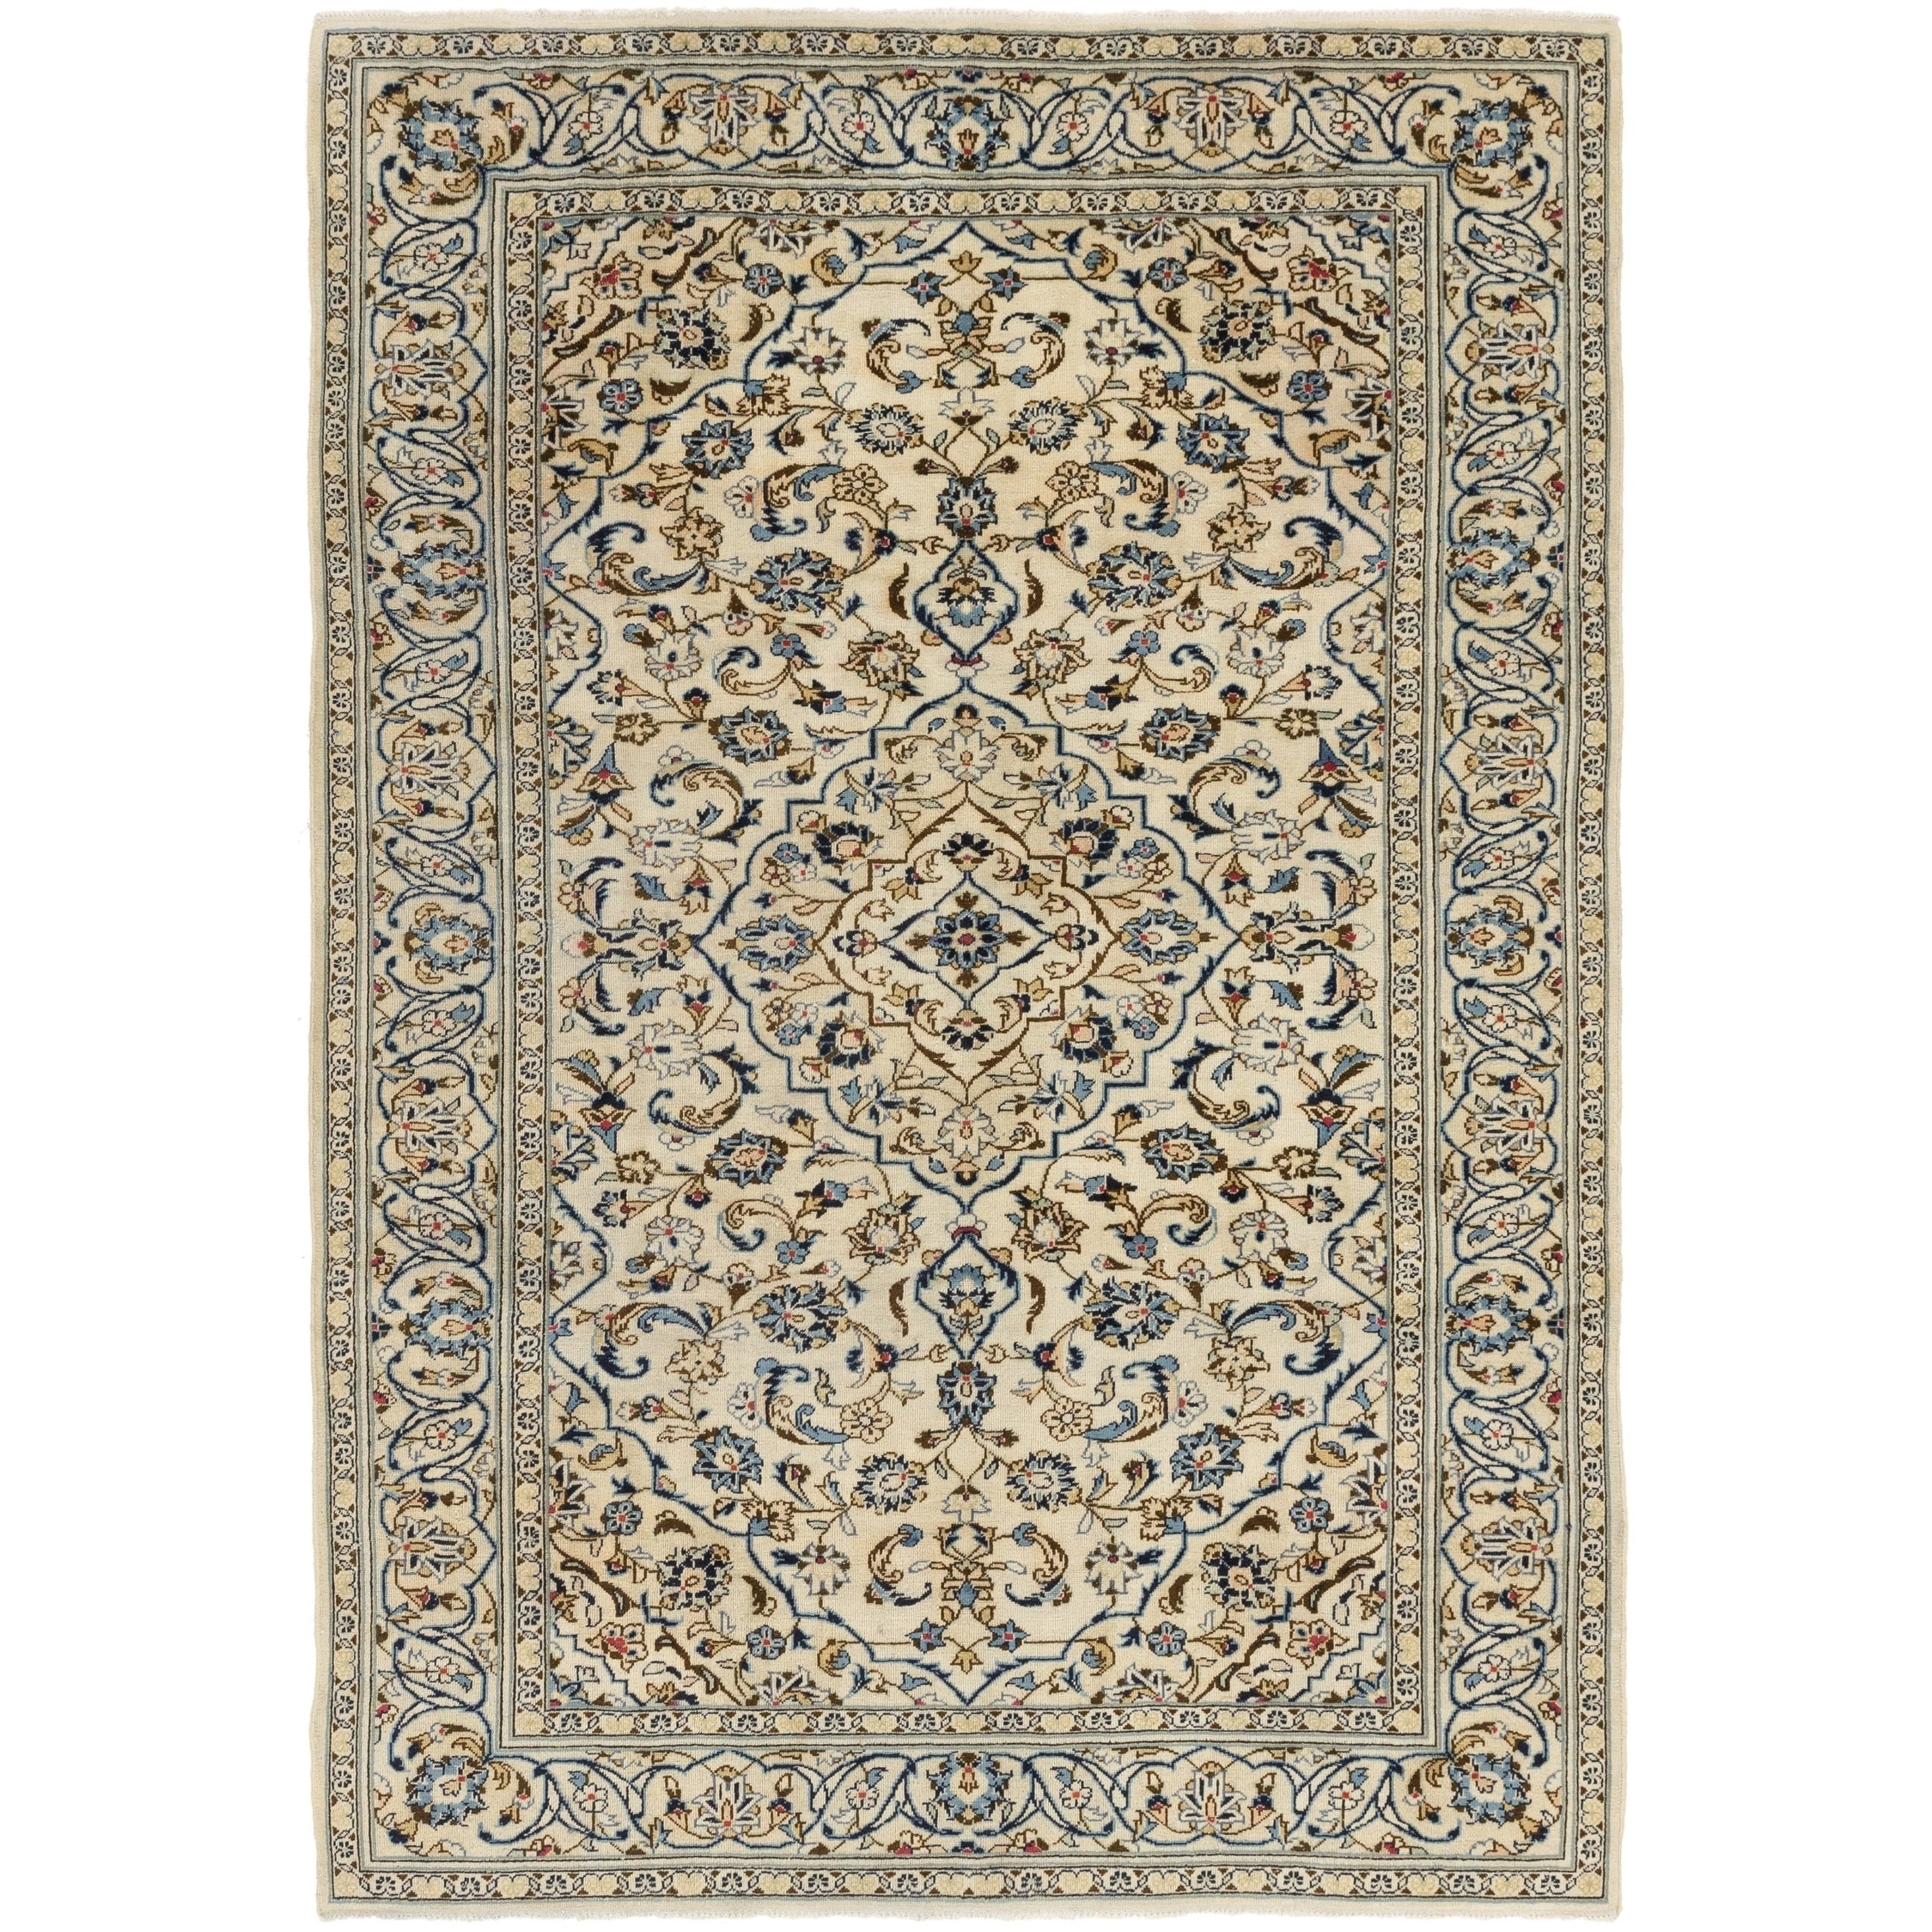 Hand Knotted Kashan Semi Antique Wool Area Rug - 6 6 x 9 4 (Cream - 6 6 x 9 4)